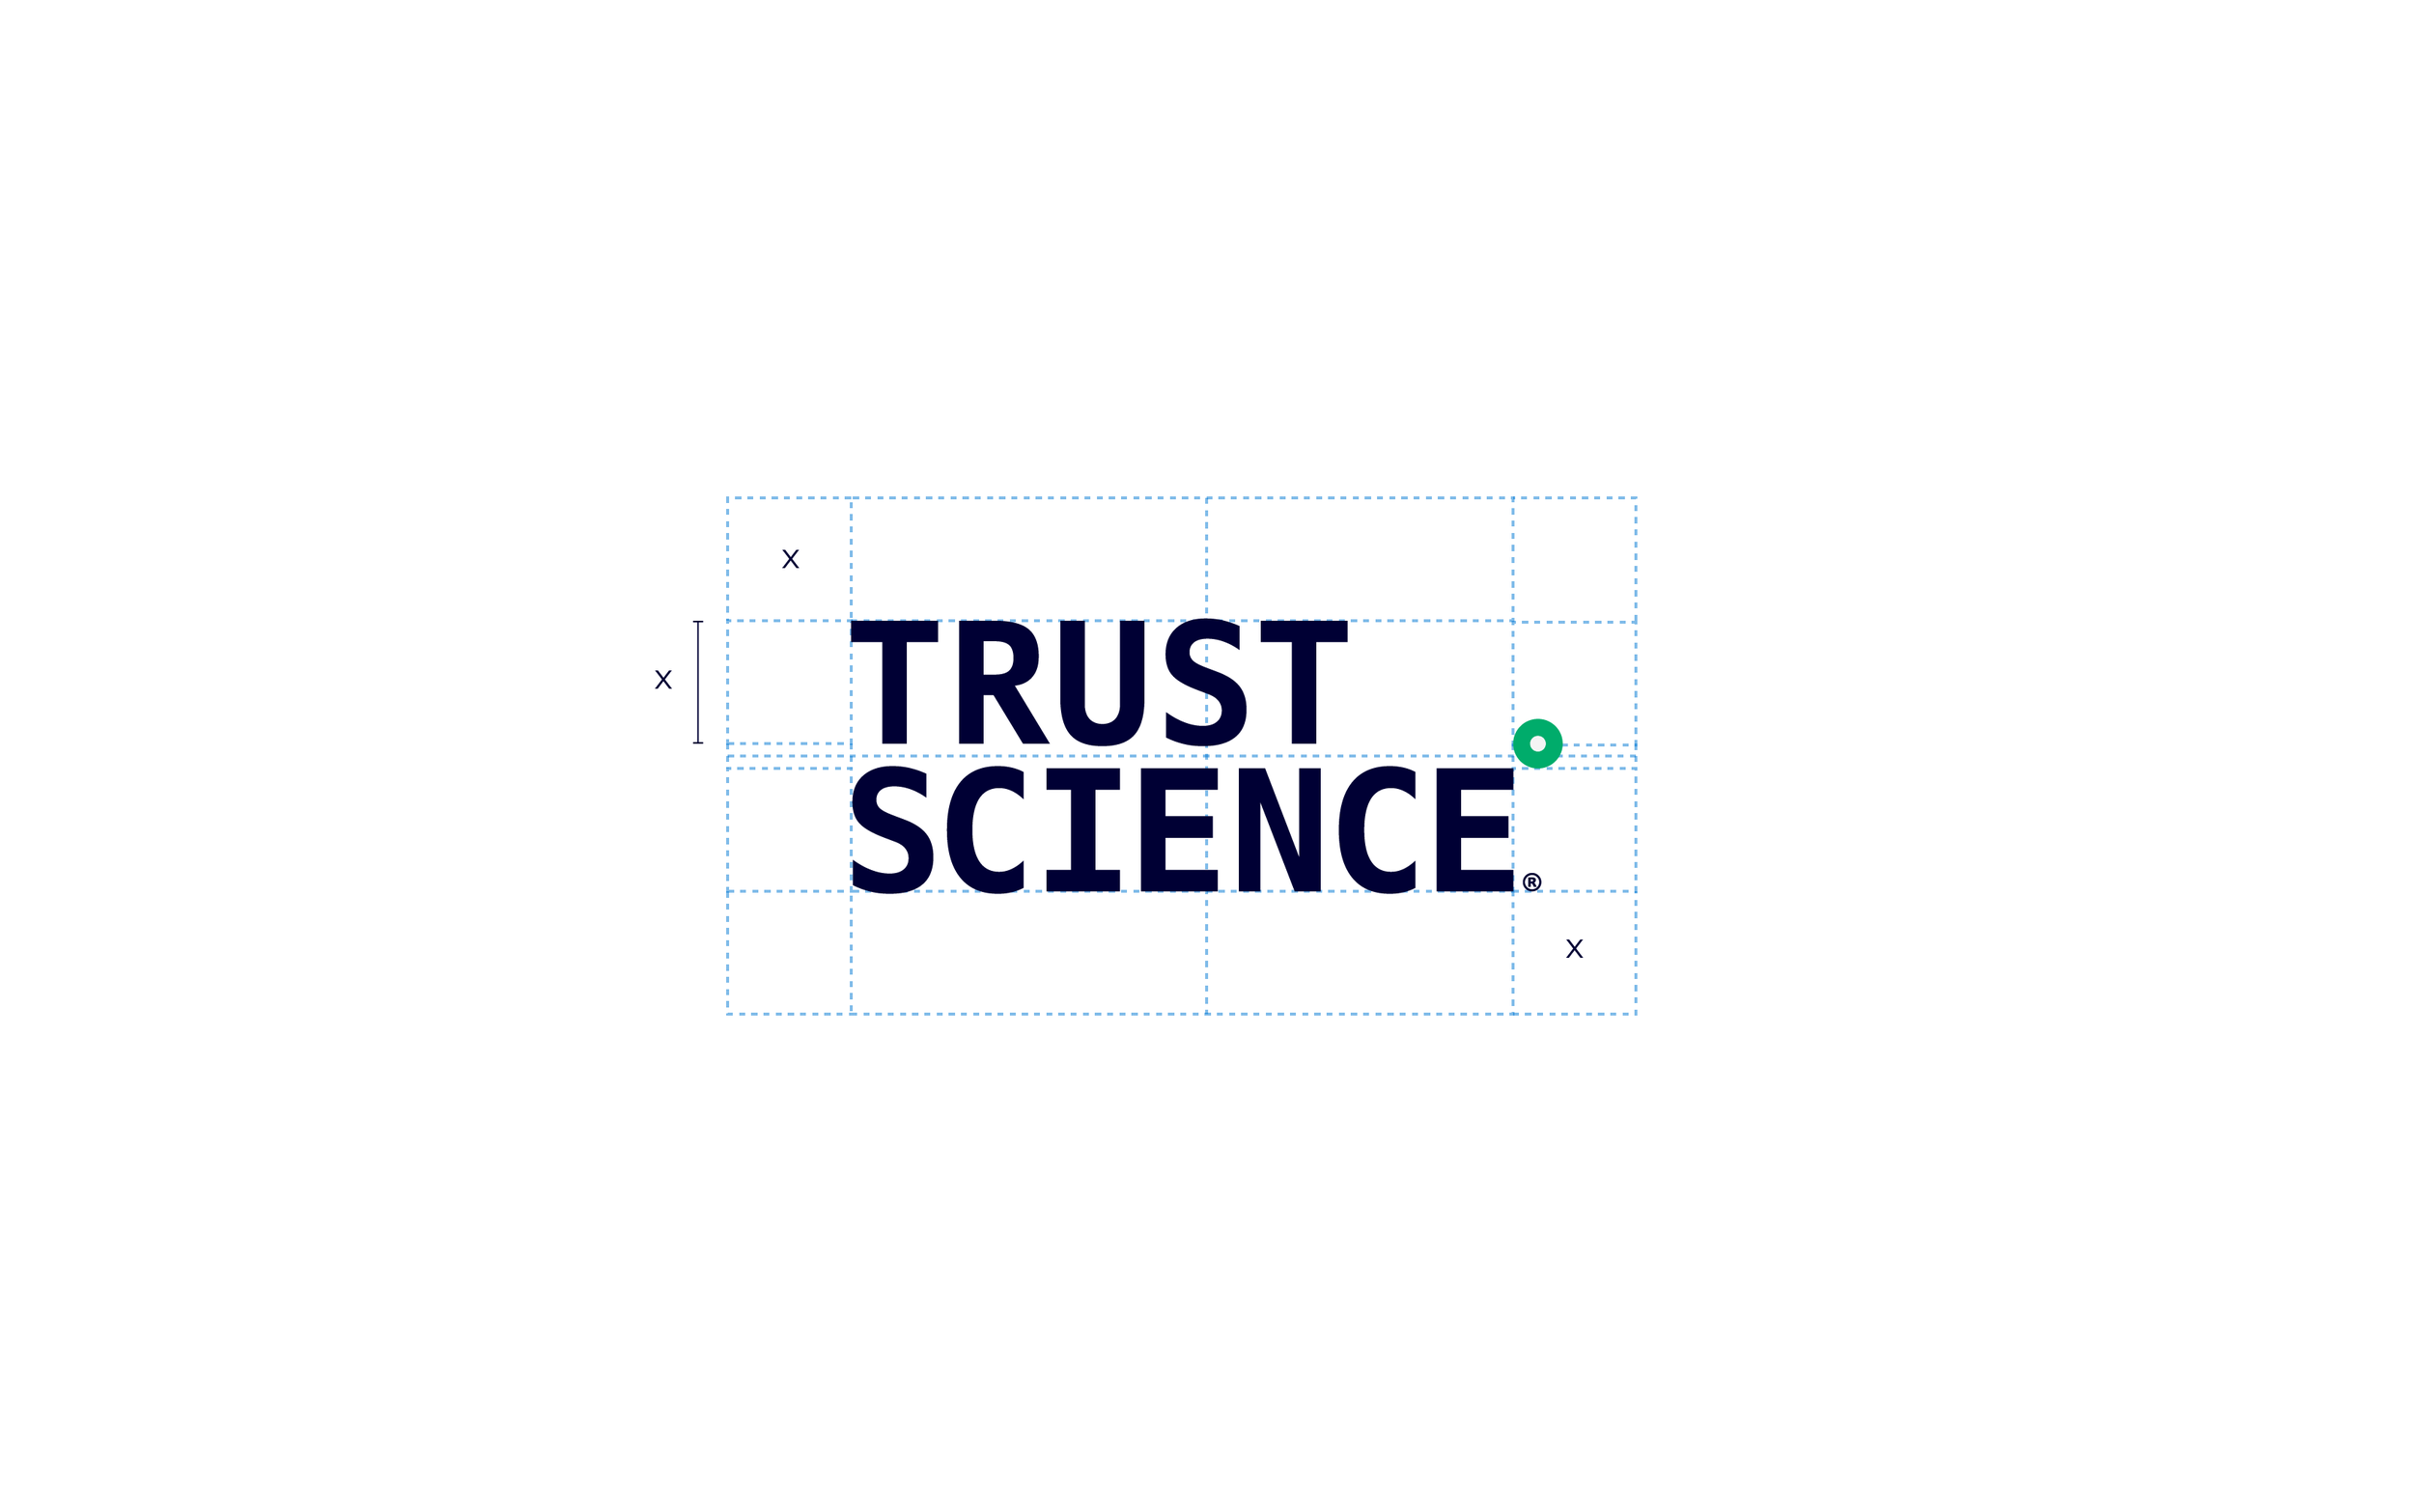 PRIMARY LOGO STACKED : CLEAR SPACE